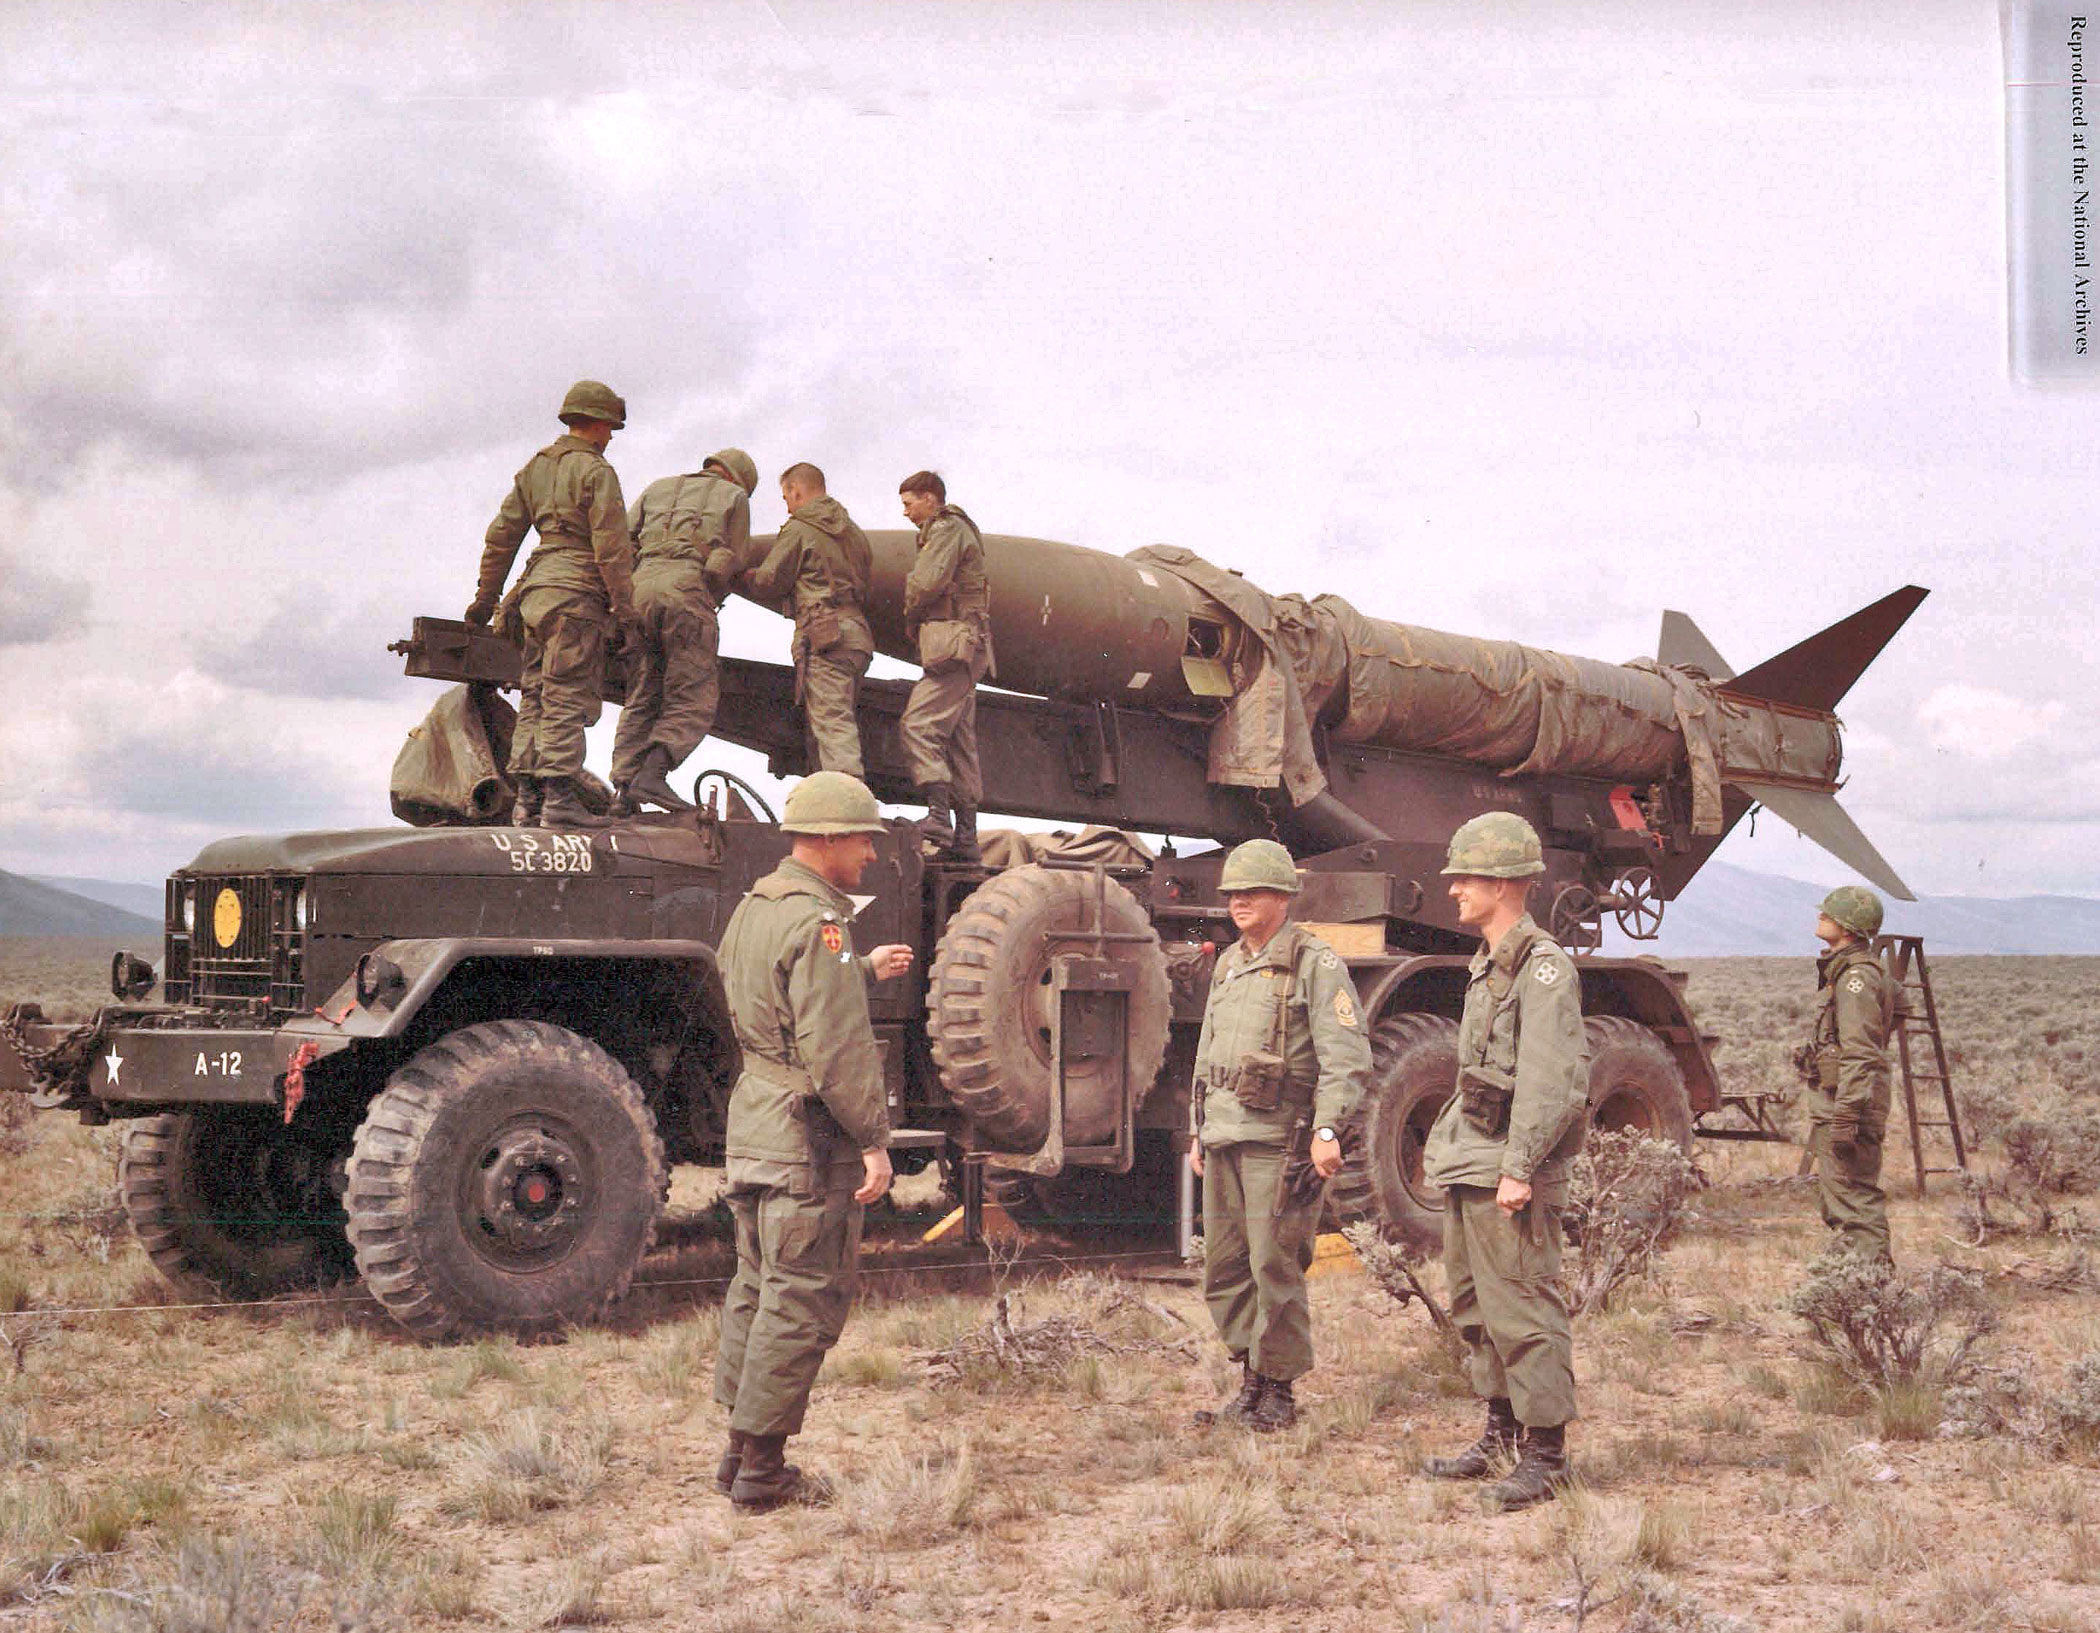 members of the 1st Battalion, 20th Field Artillery Regiment, preparing to fire a missile at Yakima Washington Firing Center during 1967